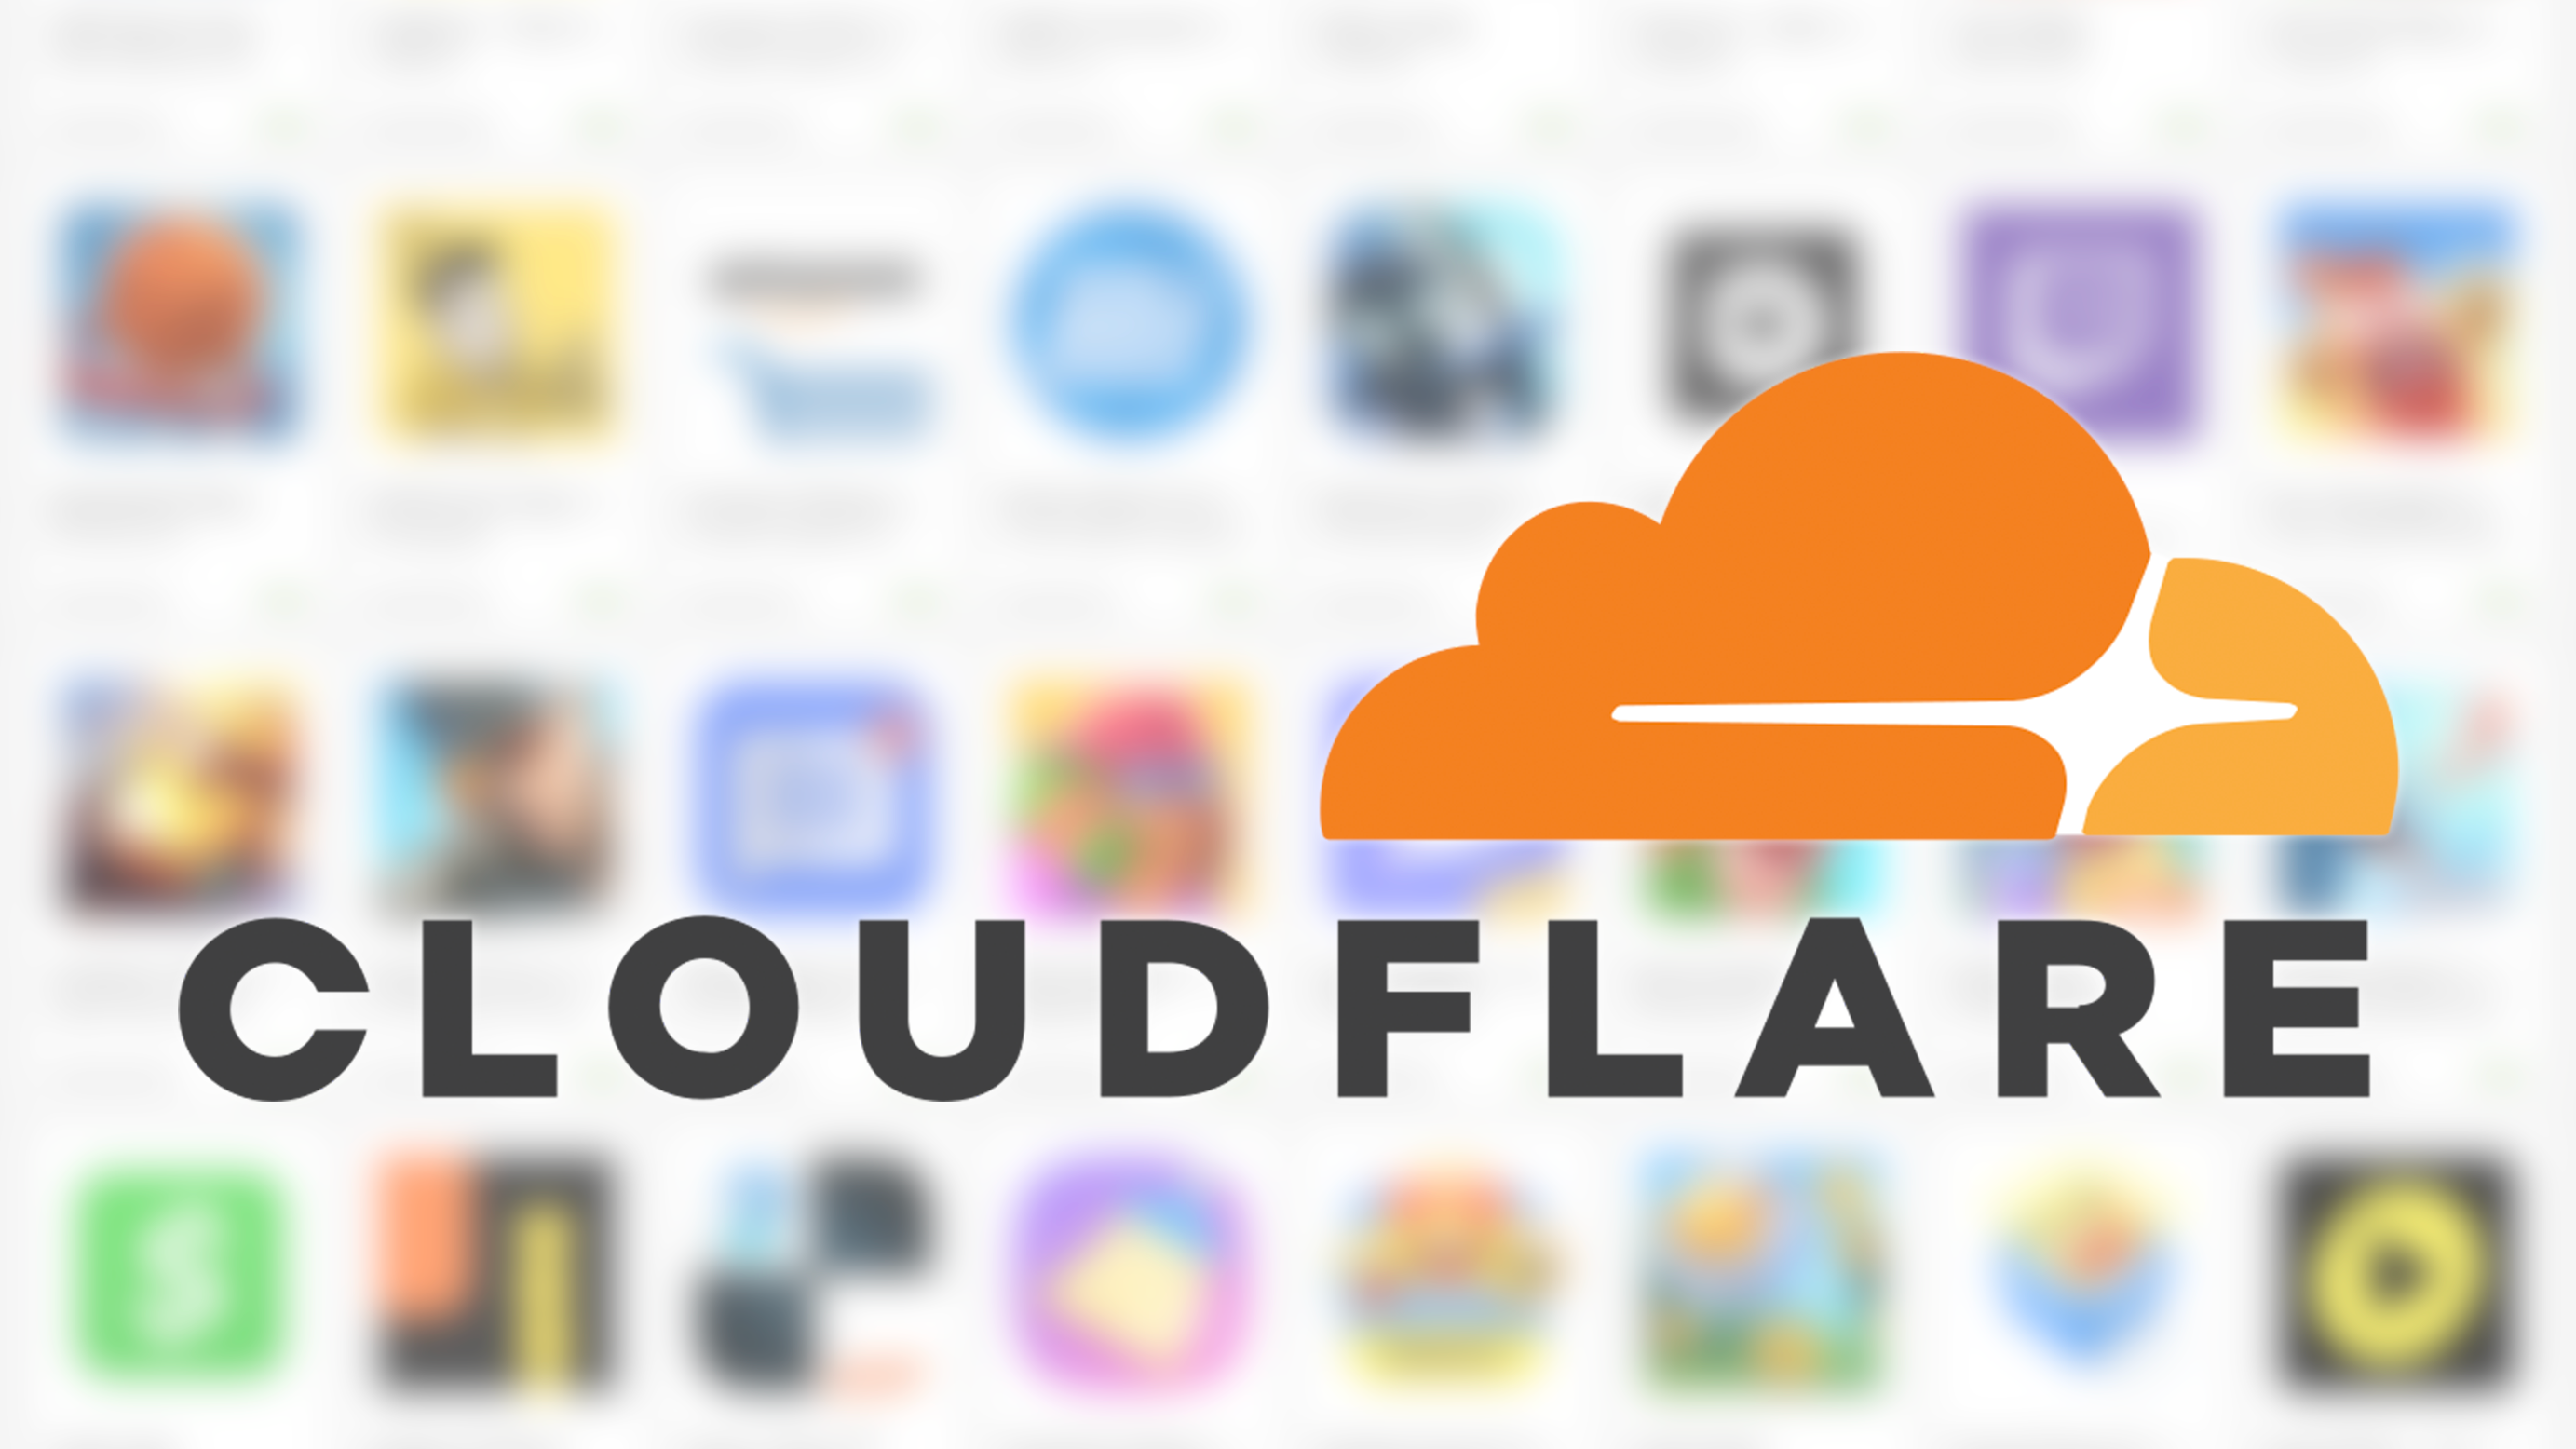 Cloudflare reveals its new networking analytics Mobile SDK